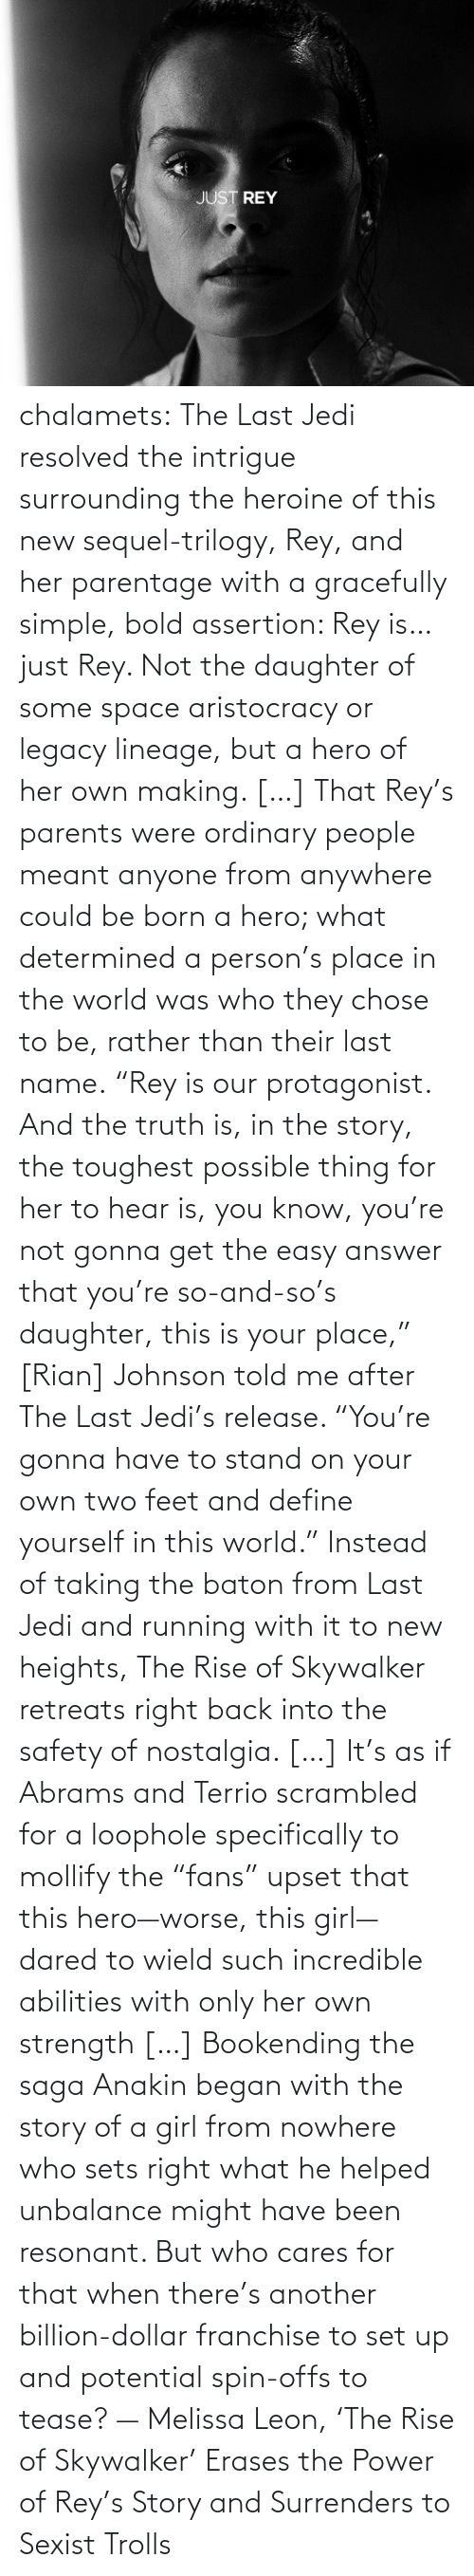 "Cares: chalamets:  The Last Jedi resolved the intrigue surrounding the heroine of this new sequel-trilogy, Rey, and her parentage with a gracefully simple, bold assertion: Rey is… just Rey. Not the daughter of some space aristocracy or legacy lineage, but a hero of her own making. […] That Rey's parents were ordinary people meant anyone from anywhere could be born a hero; what determined a person's place in the world was who they chose to be, rather than their last name. ""Rey is our protagonist. And the truth is, in the story, the toughest possible thing for her to hear is, you know, you're not gonna get the easy answer that you're so-and-so's daughter, this is your place,"" [Rian] Johnson told me after The Last Jedi's release. ""You're gonna have to stand on your own two feet and define yourself in this world."" Instead of taking the baton from Last Jedi and running with it to new heights, The Rise of Skywalker retreats right back into the safety of nostalgia. […] It's as if Abrams and Terrio scrambled for a loophole specifically to mollify the ""fans"" upset that this hero—worse, this girl—dared to wield such incredible abilities with only her own strength […] Bookending the saga Anakin began with the story of a girl from nowhere who sets right what he helped unbalance might have been resonant. But who cares for that when there's another billion-dollar franchise to set up and potential spin-offs to tease? — Melissa Leon, 'The Rise of Skywalker' Erases the Power of Rey's Story and Surrenders to Sexist Trolls"